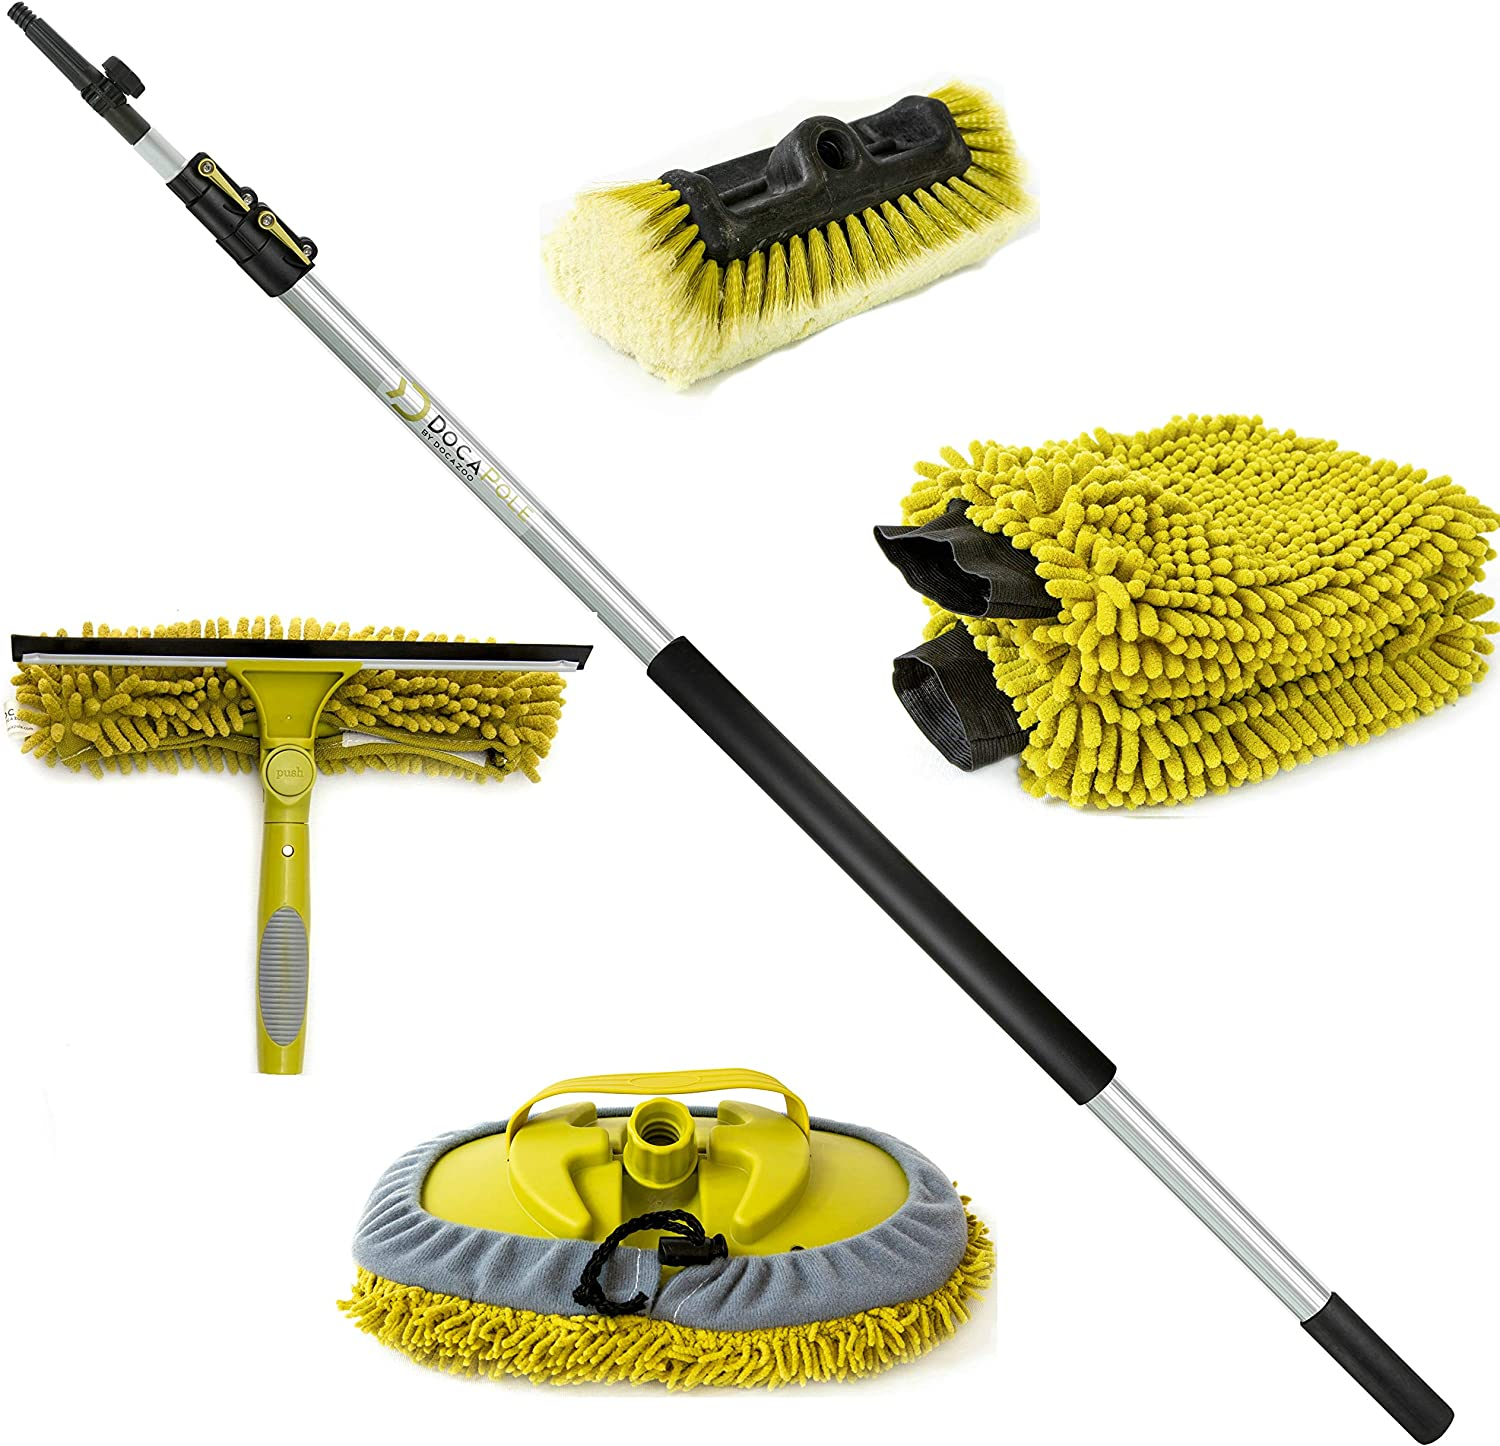 DocaPole 5-12 ft Ultimate Window Washing Kit with Squeege Scrubber, Cleaning Head, Soft Bristle Brush, 2X Wash Mitts